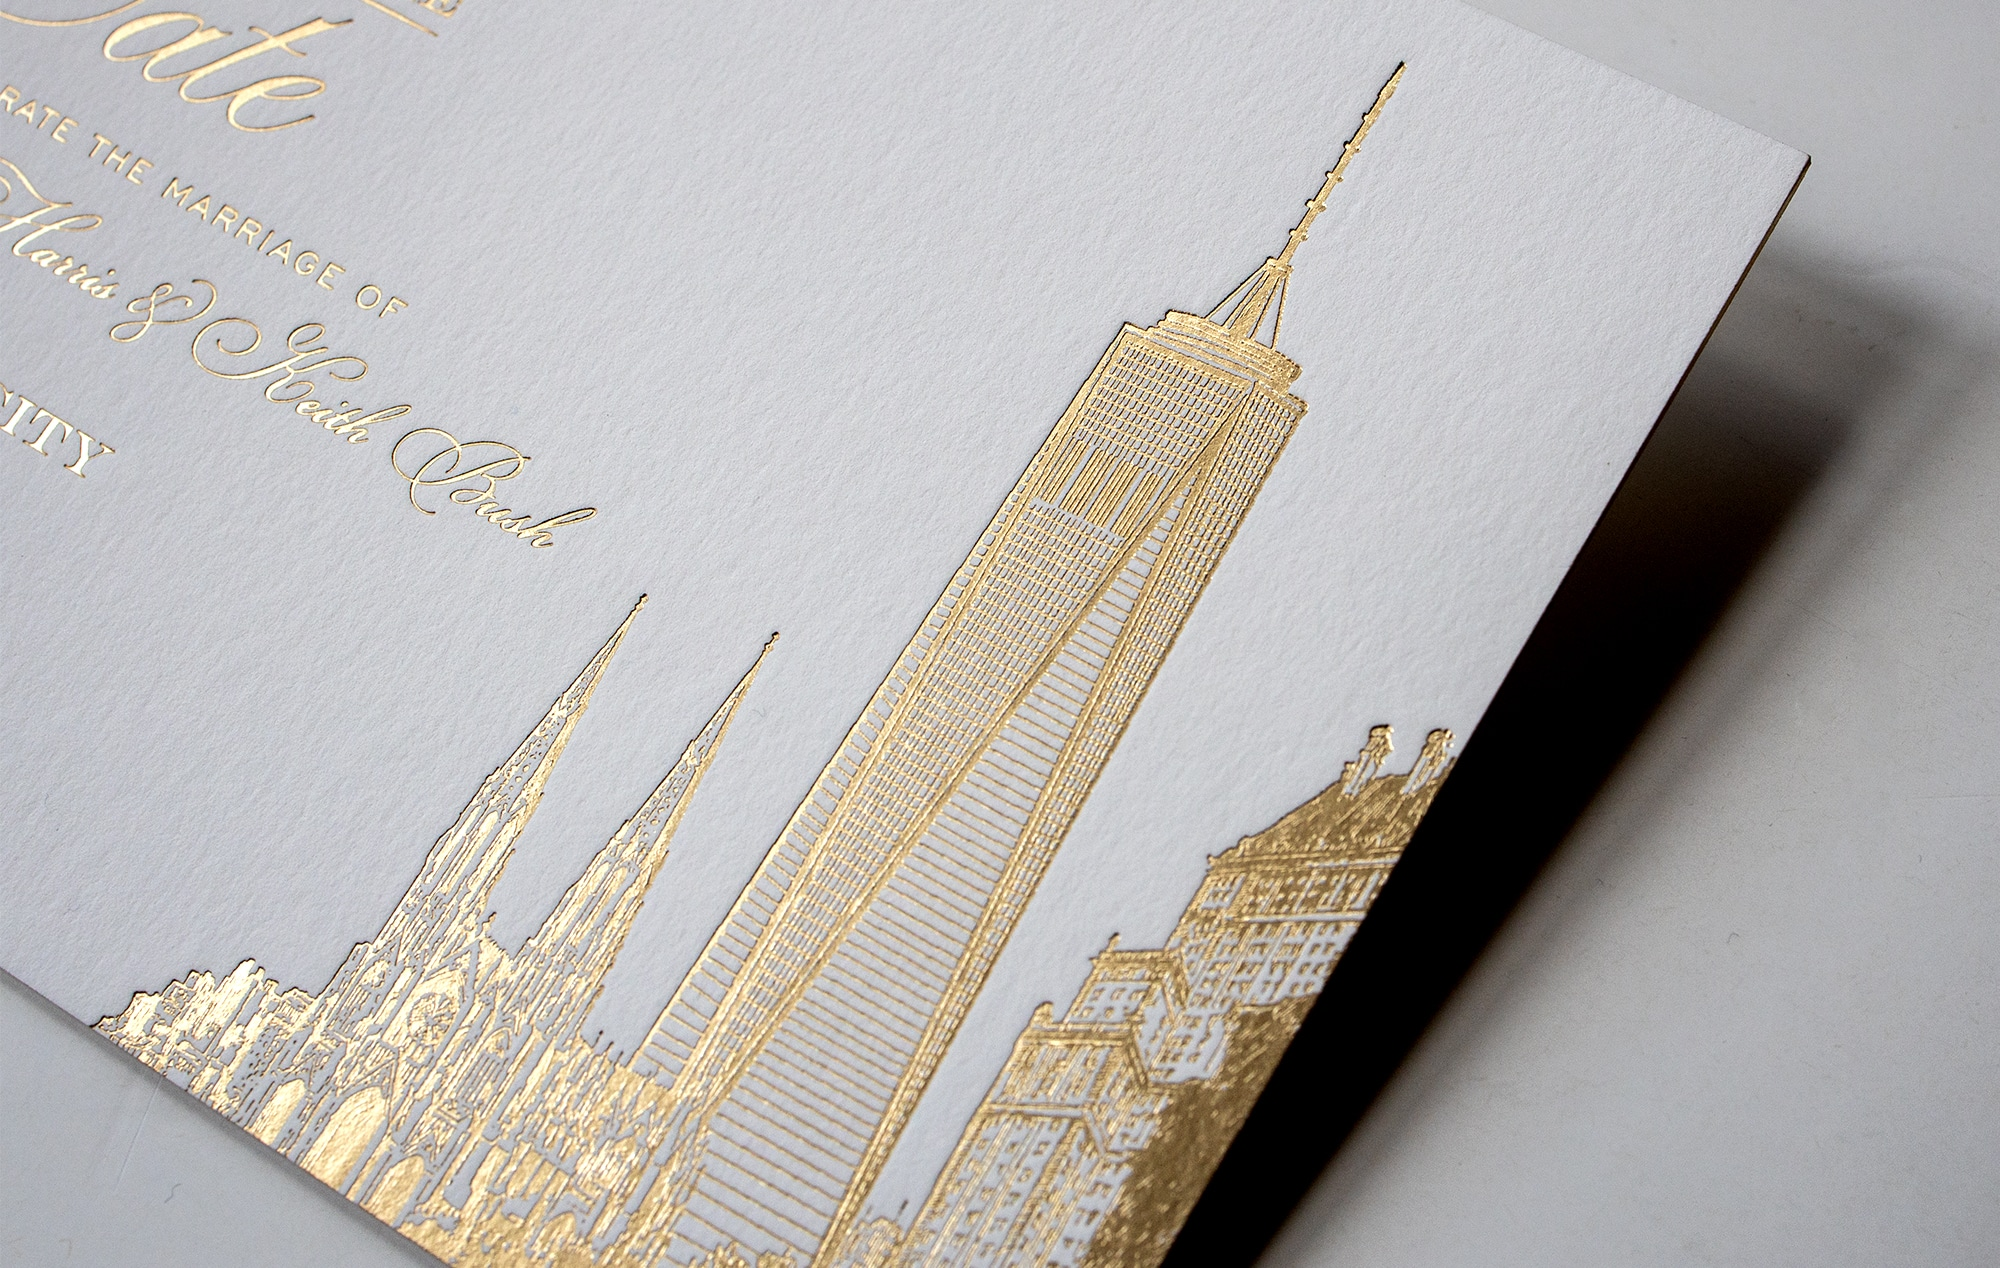 Gold foil illustration of One World Trade Center